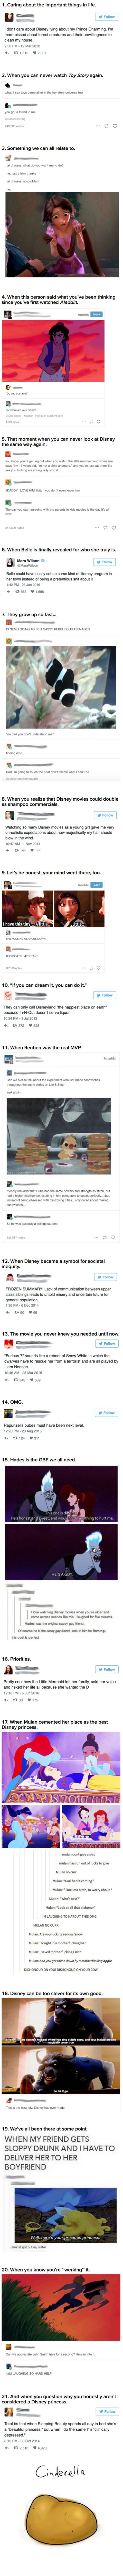 21 Funny Disney Posts That'll Make You Pee Your Pants